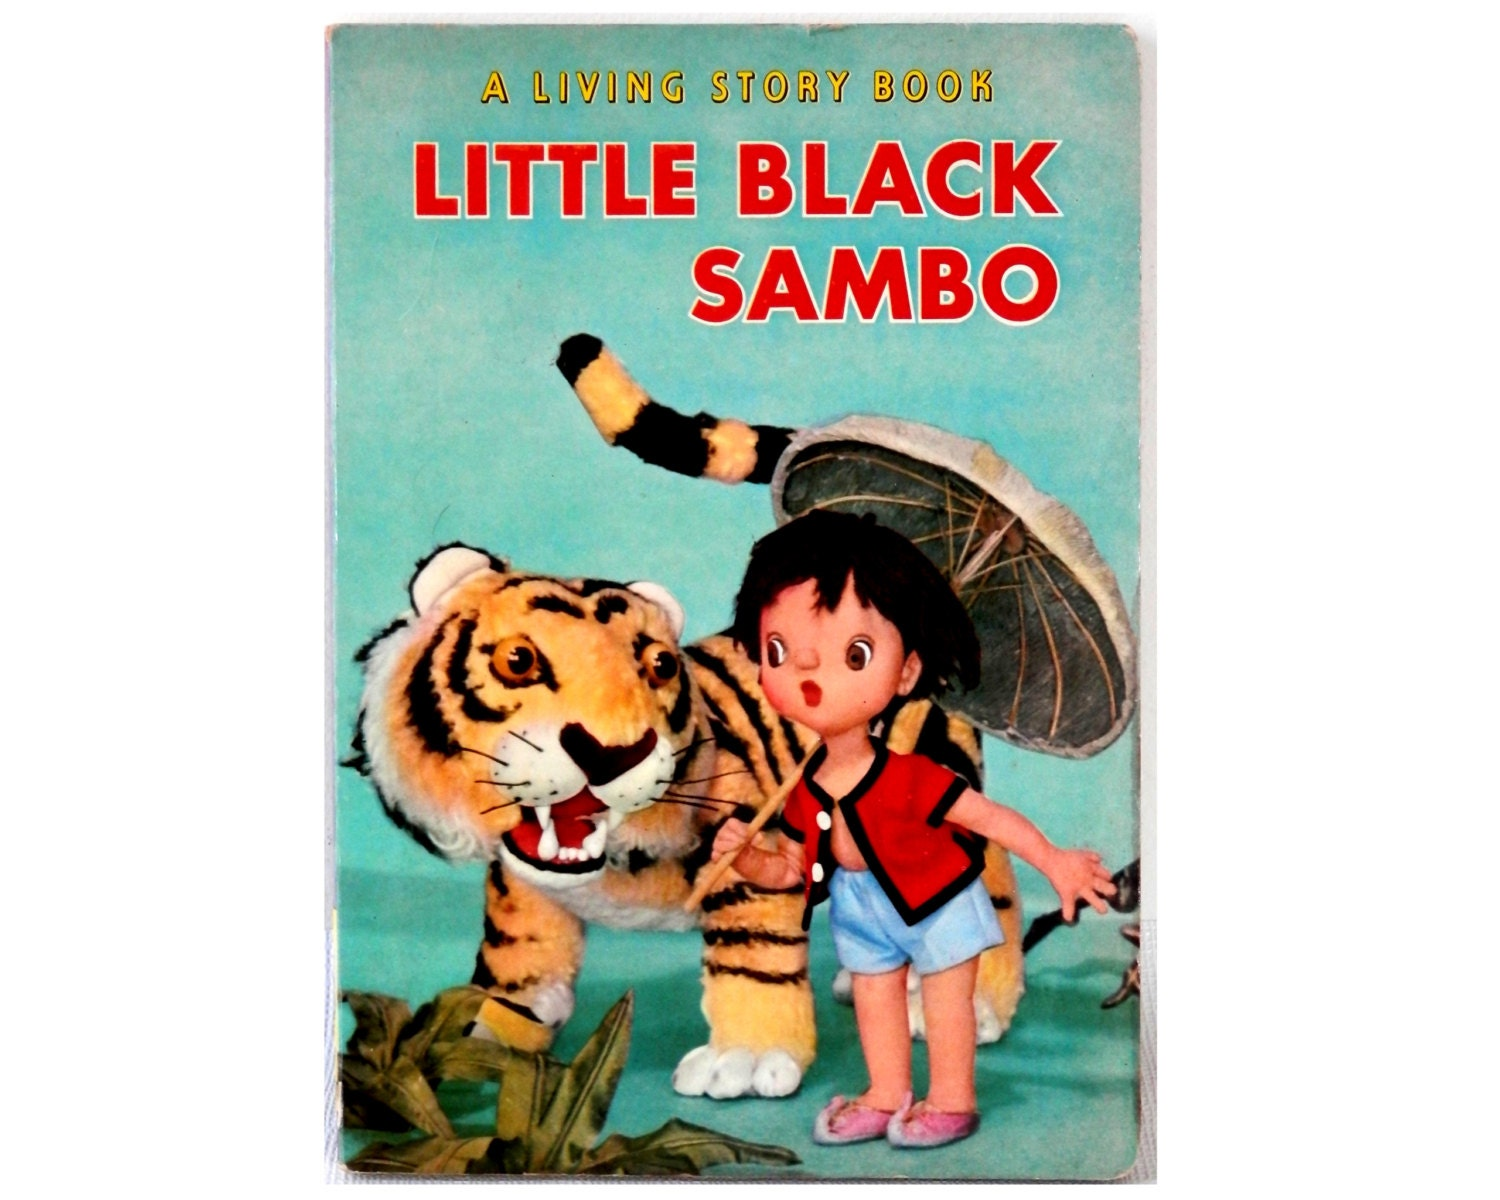 an introduction to the banishment of little black sambo